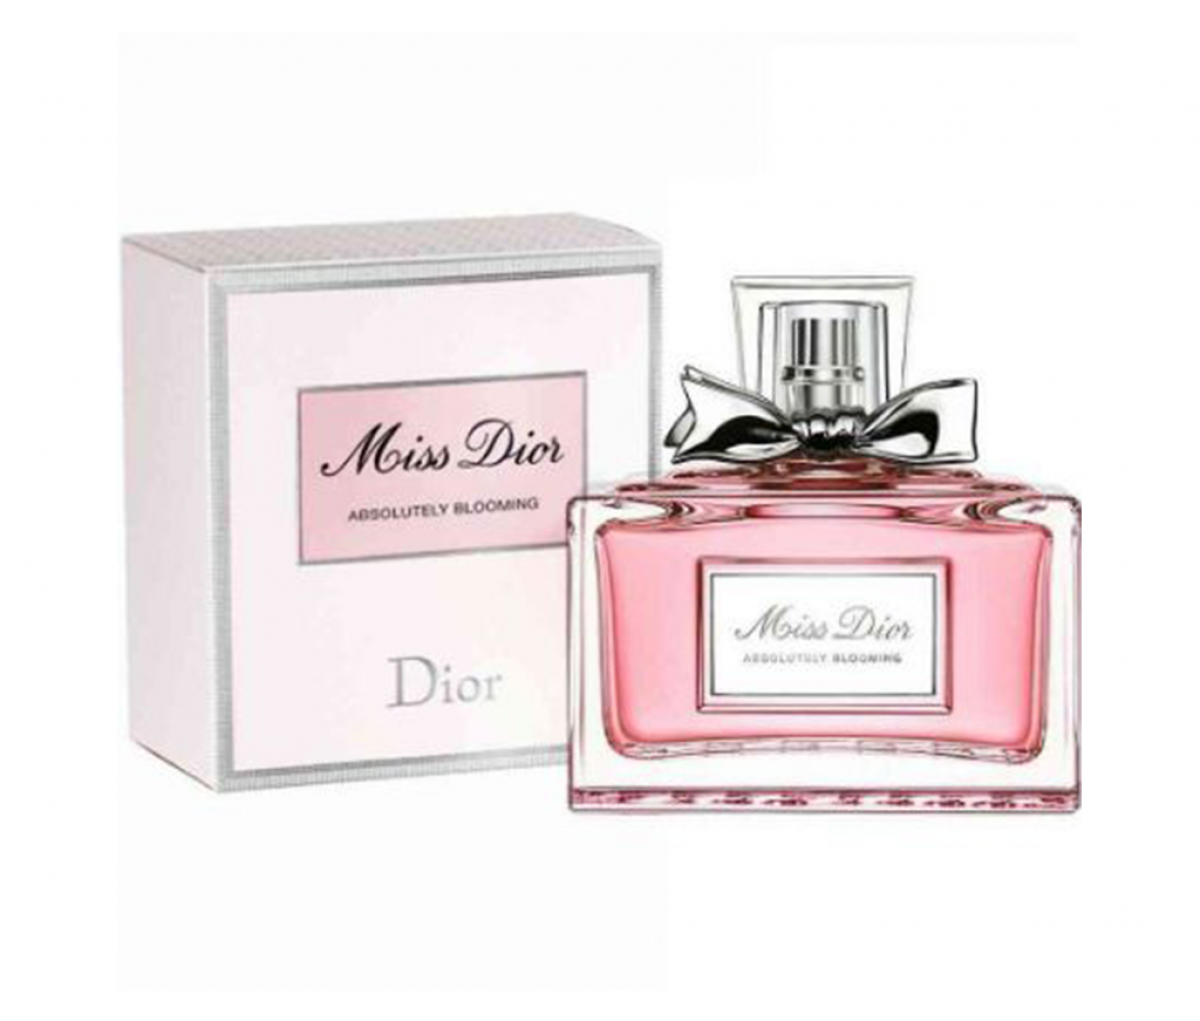 C.D Miss Dior Absolutely Blooming Edp  Spy 100ml